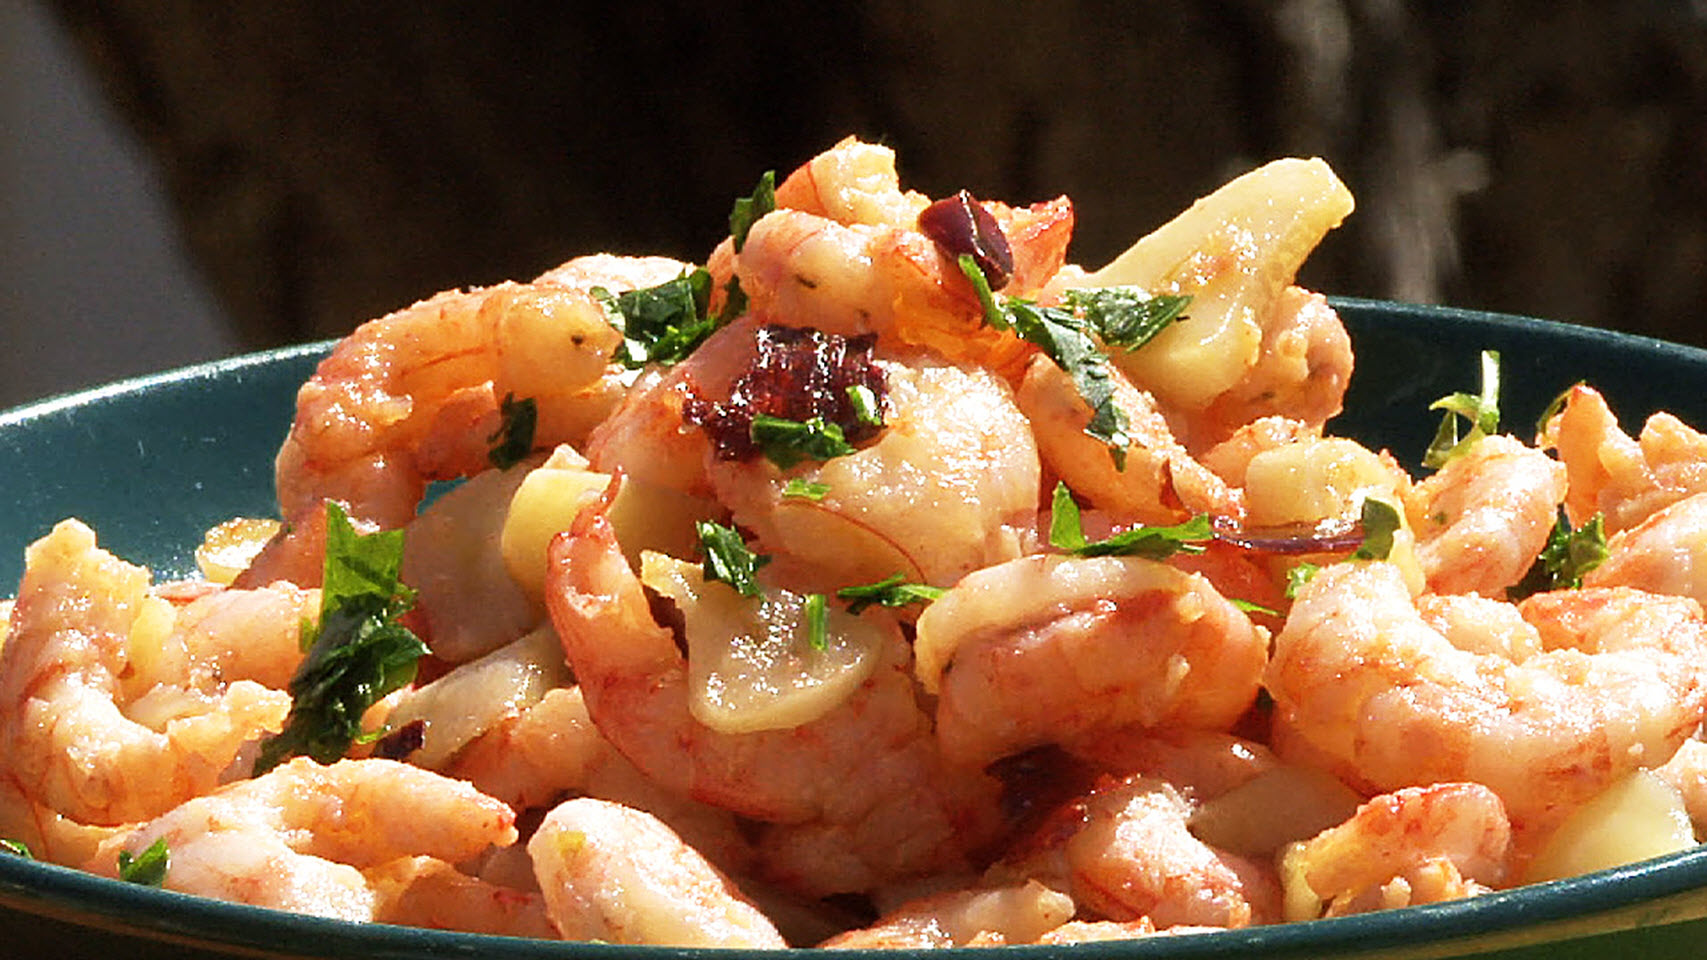 Spanish Pan-Fried Shrimp with Garlic